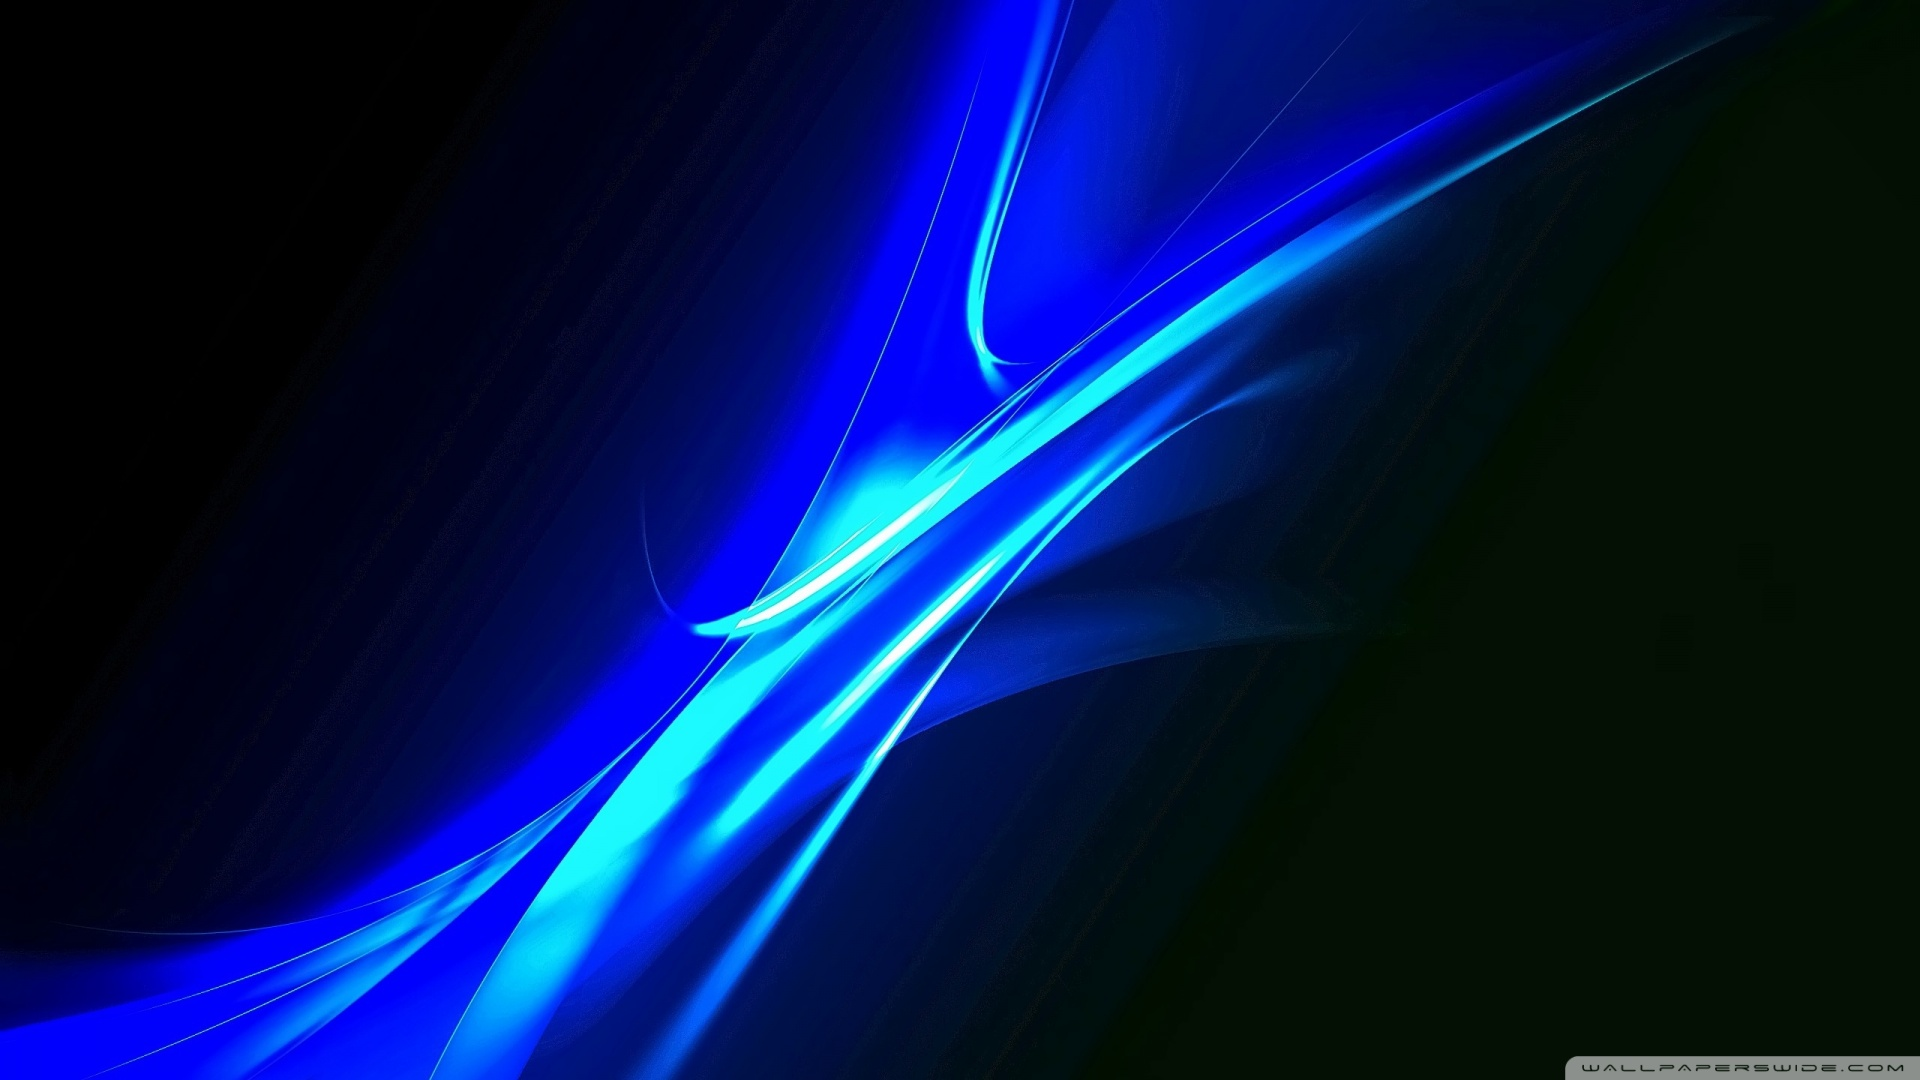 Blue Neon Light Wallpaper 1920x1080 Blue Neon Light 1920x1080